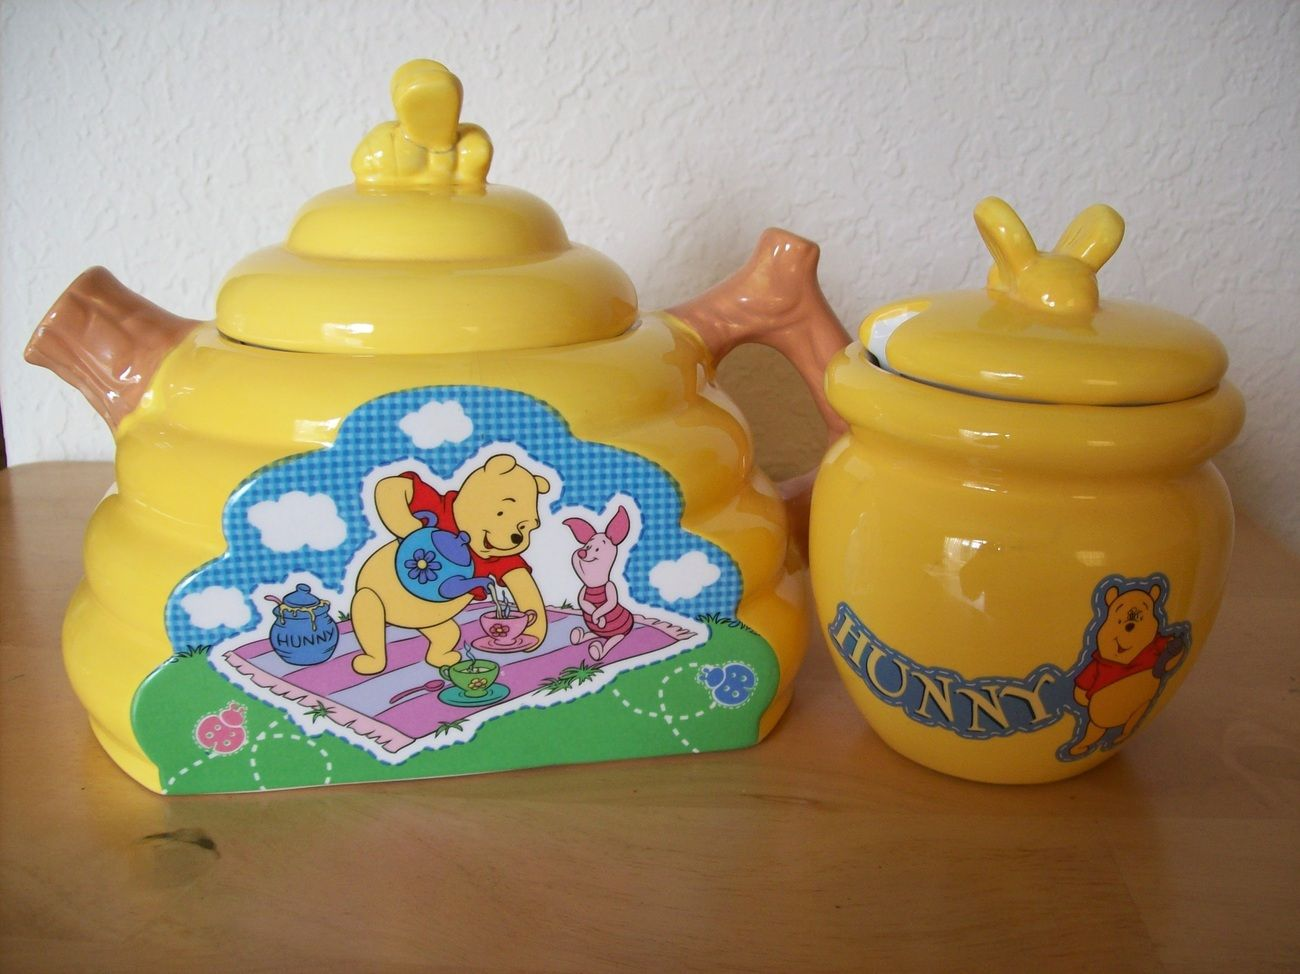 Winnie the pooh bathroom sets - Disney Winnie The Pooh And Piglet Teapot And Hunny Jar